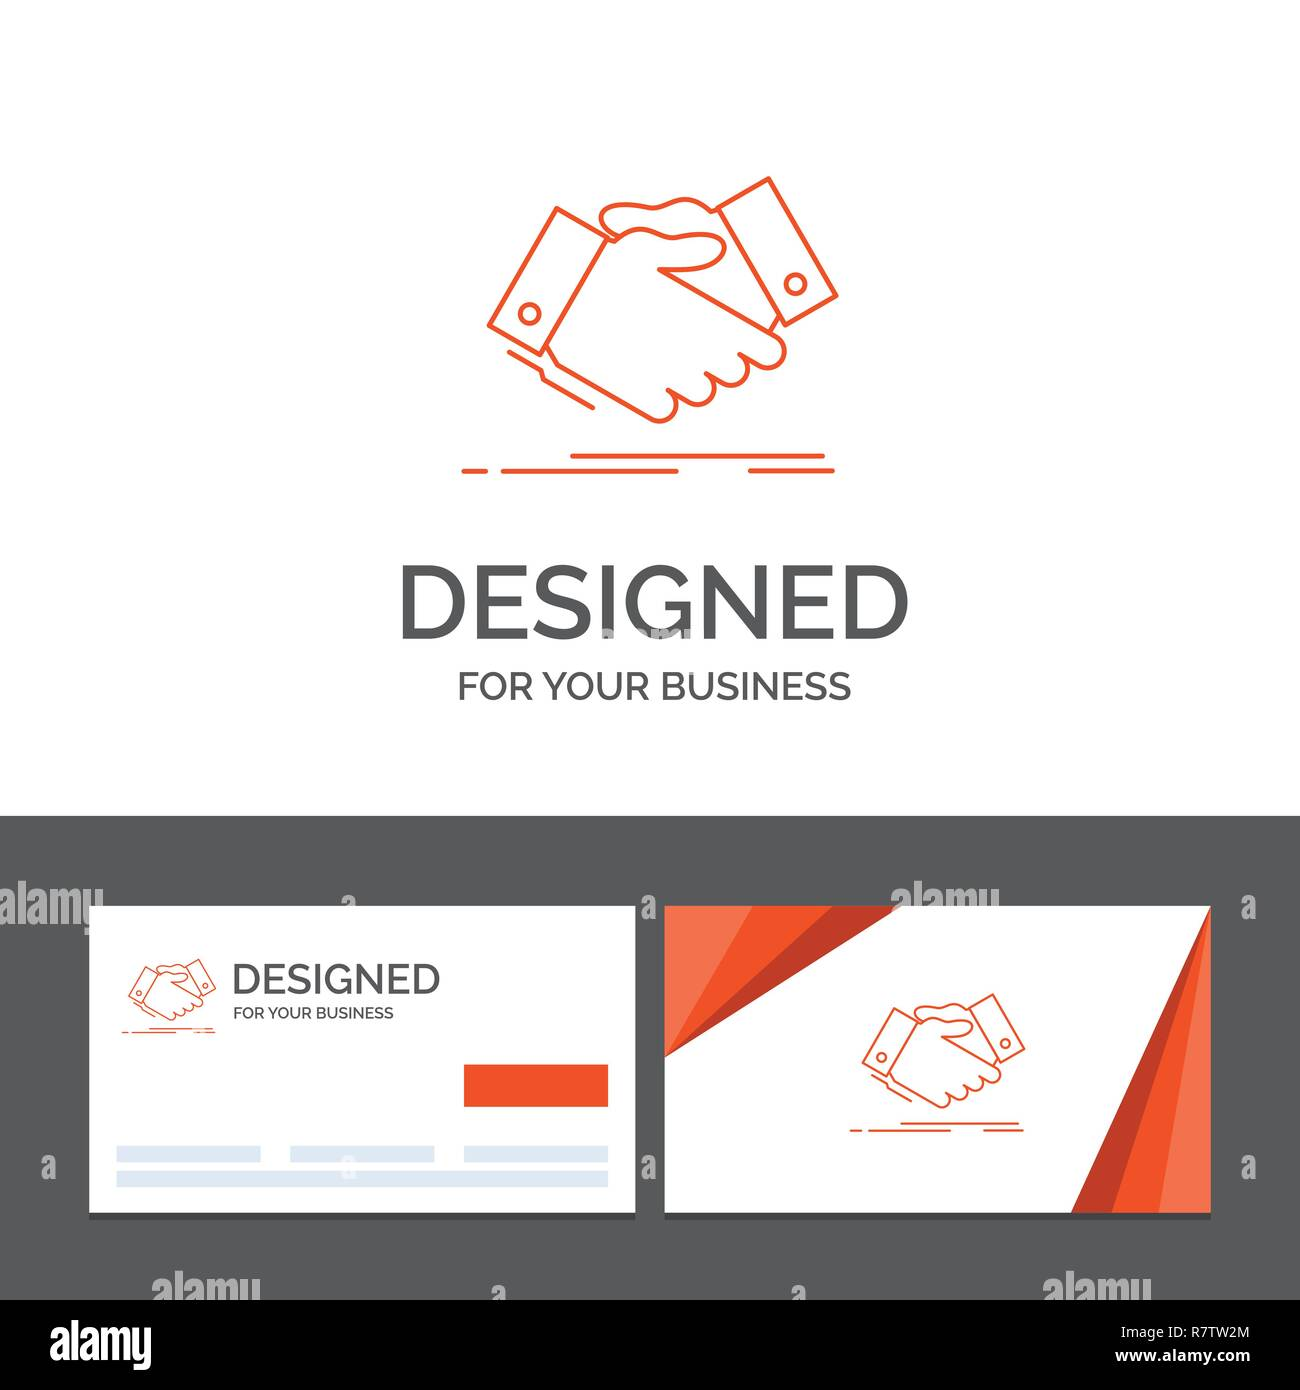 Business logo template for handshake, hand shake, shaking hand